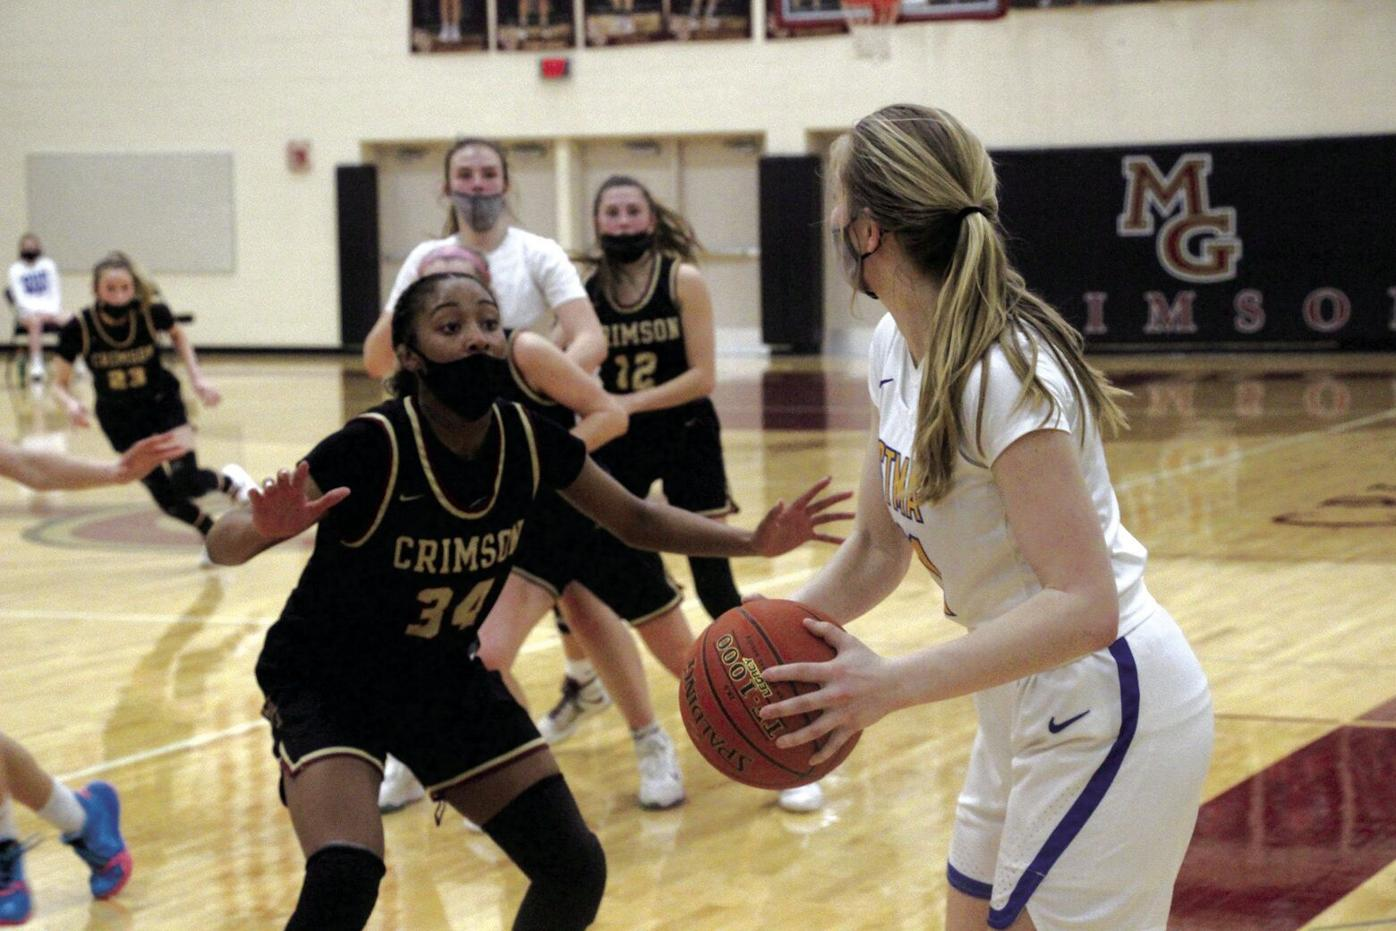 Crimson girls season ends with loss to Knights